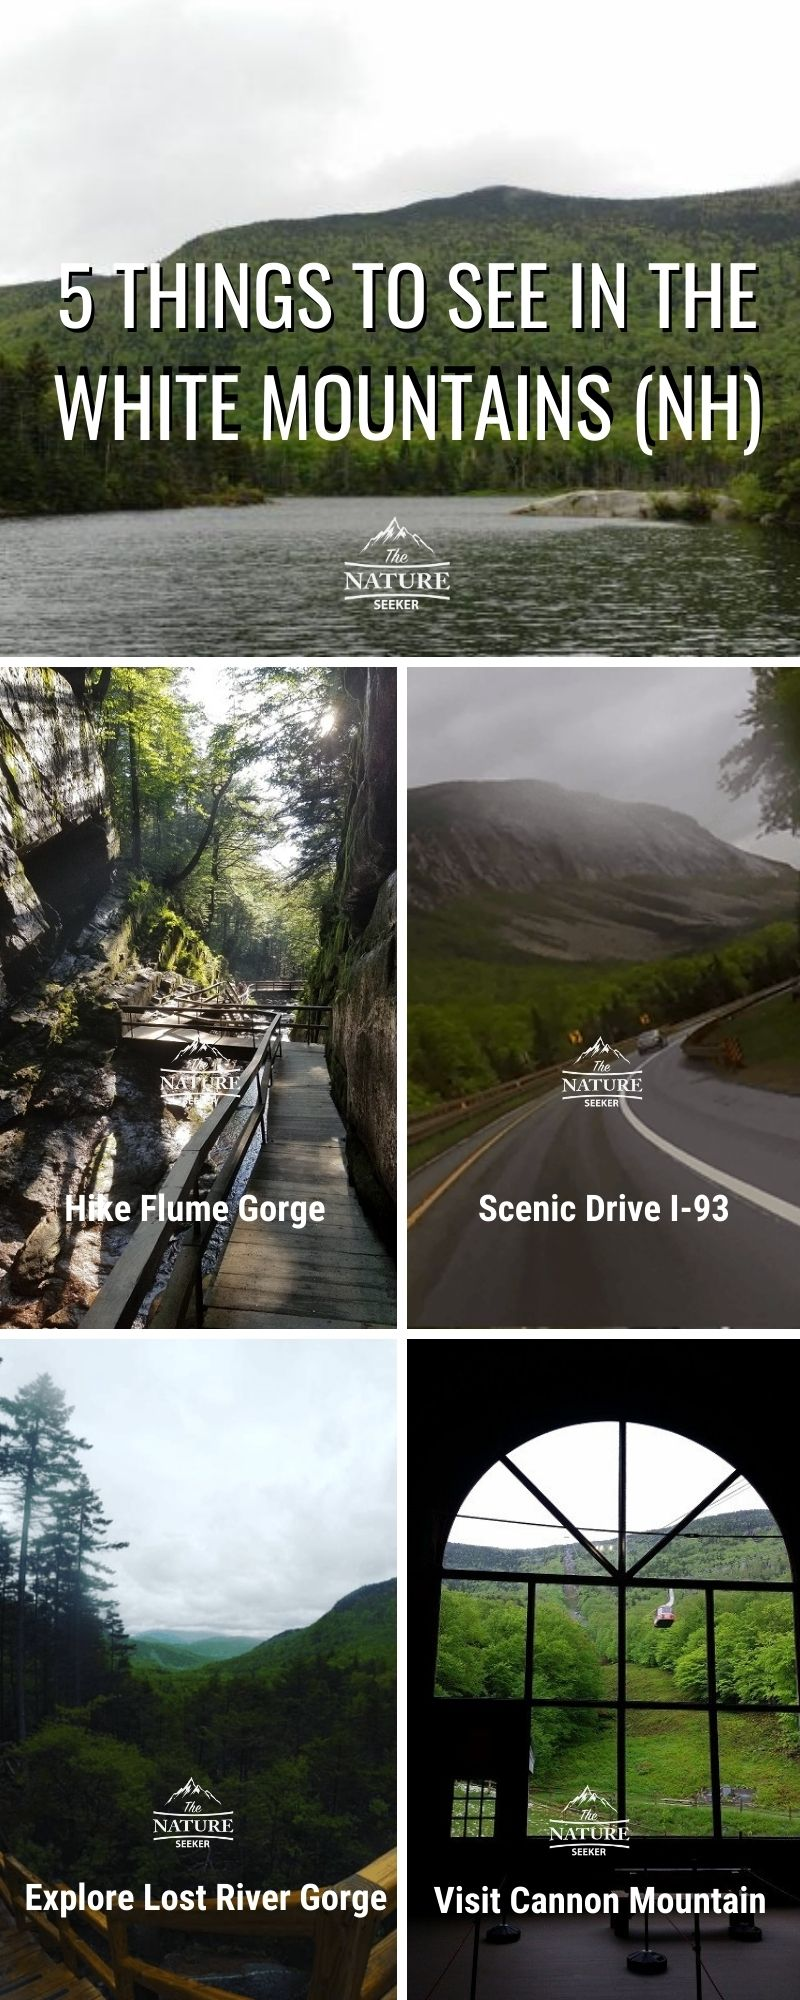 5 things to explore in the white mountains NH infographic